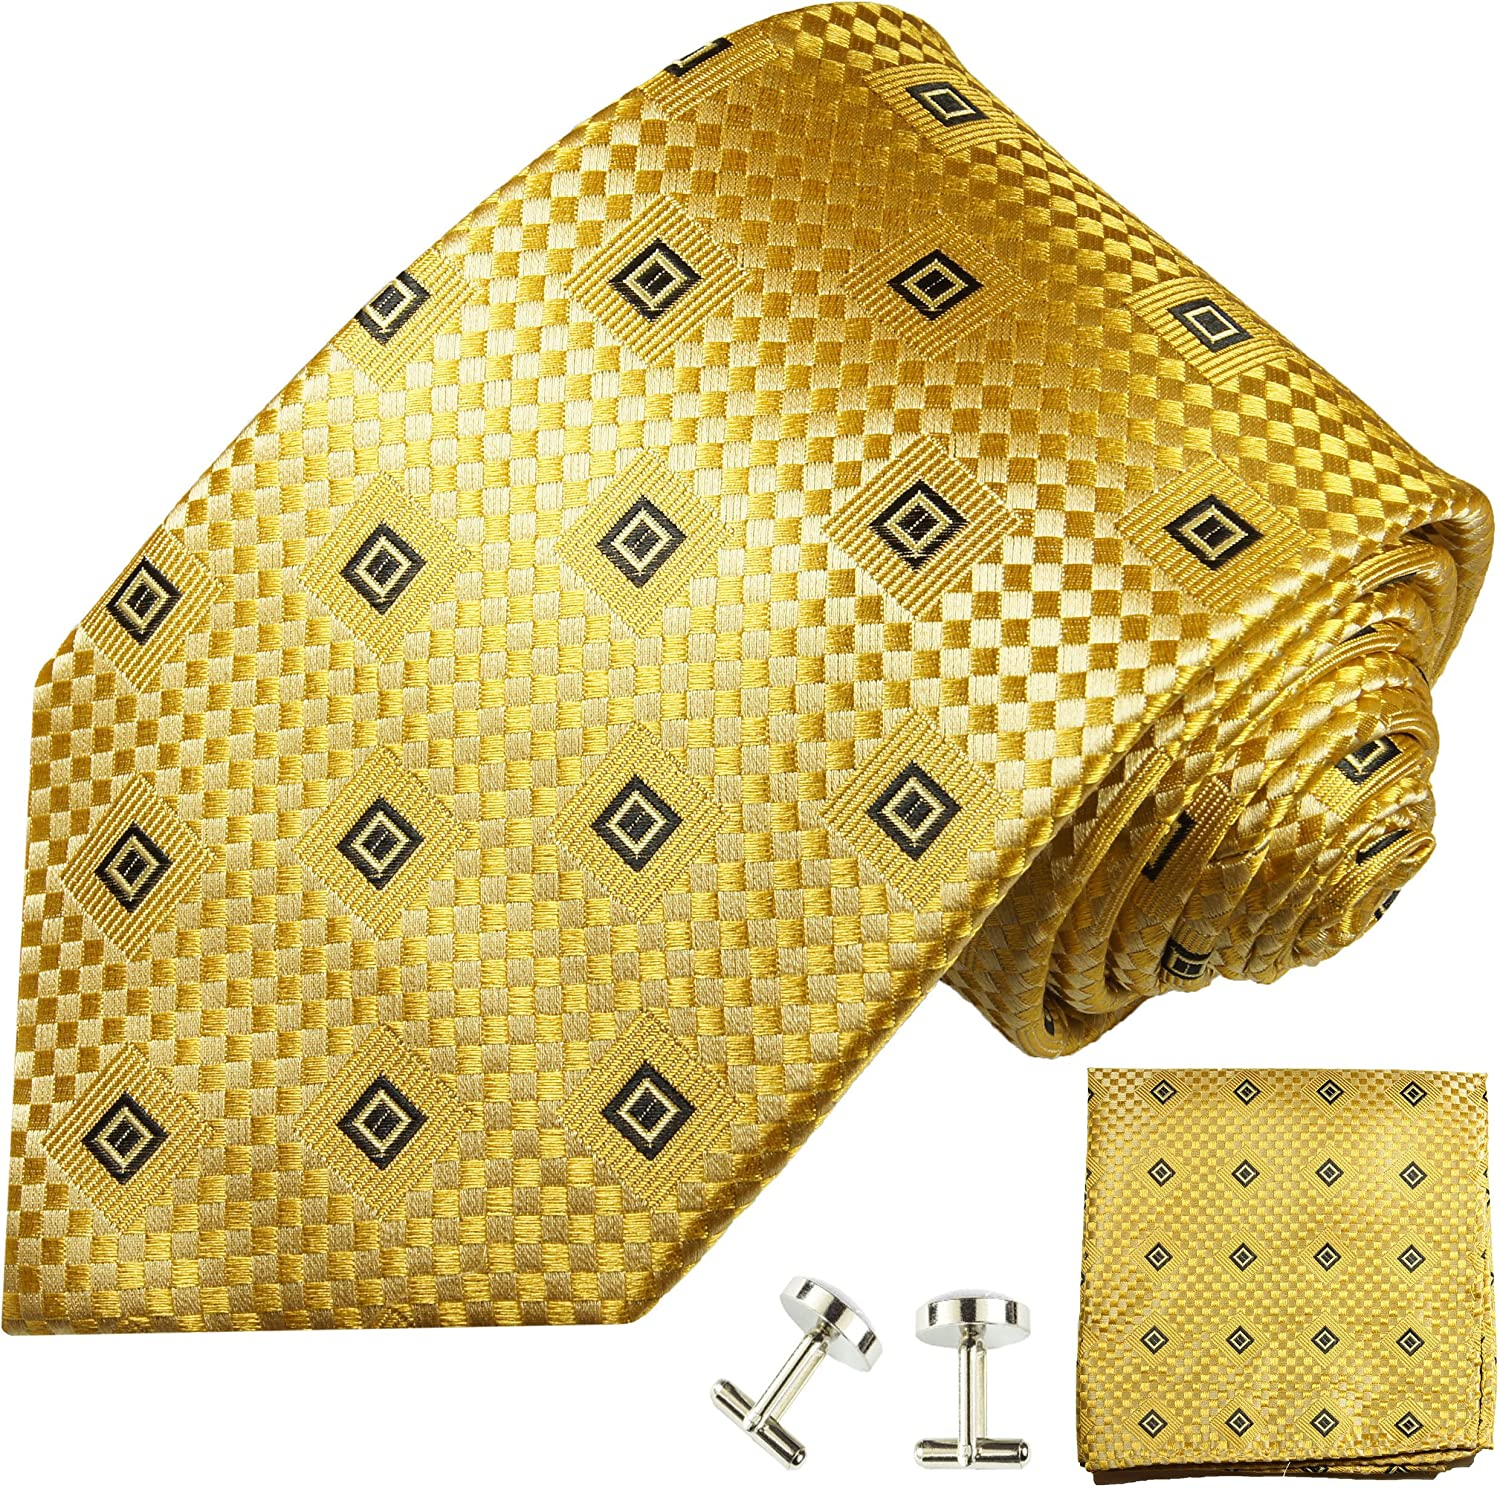 Gold Patterned Silk Tie with Pocket Square and Cufflinks